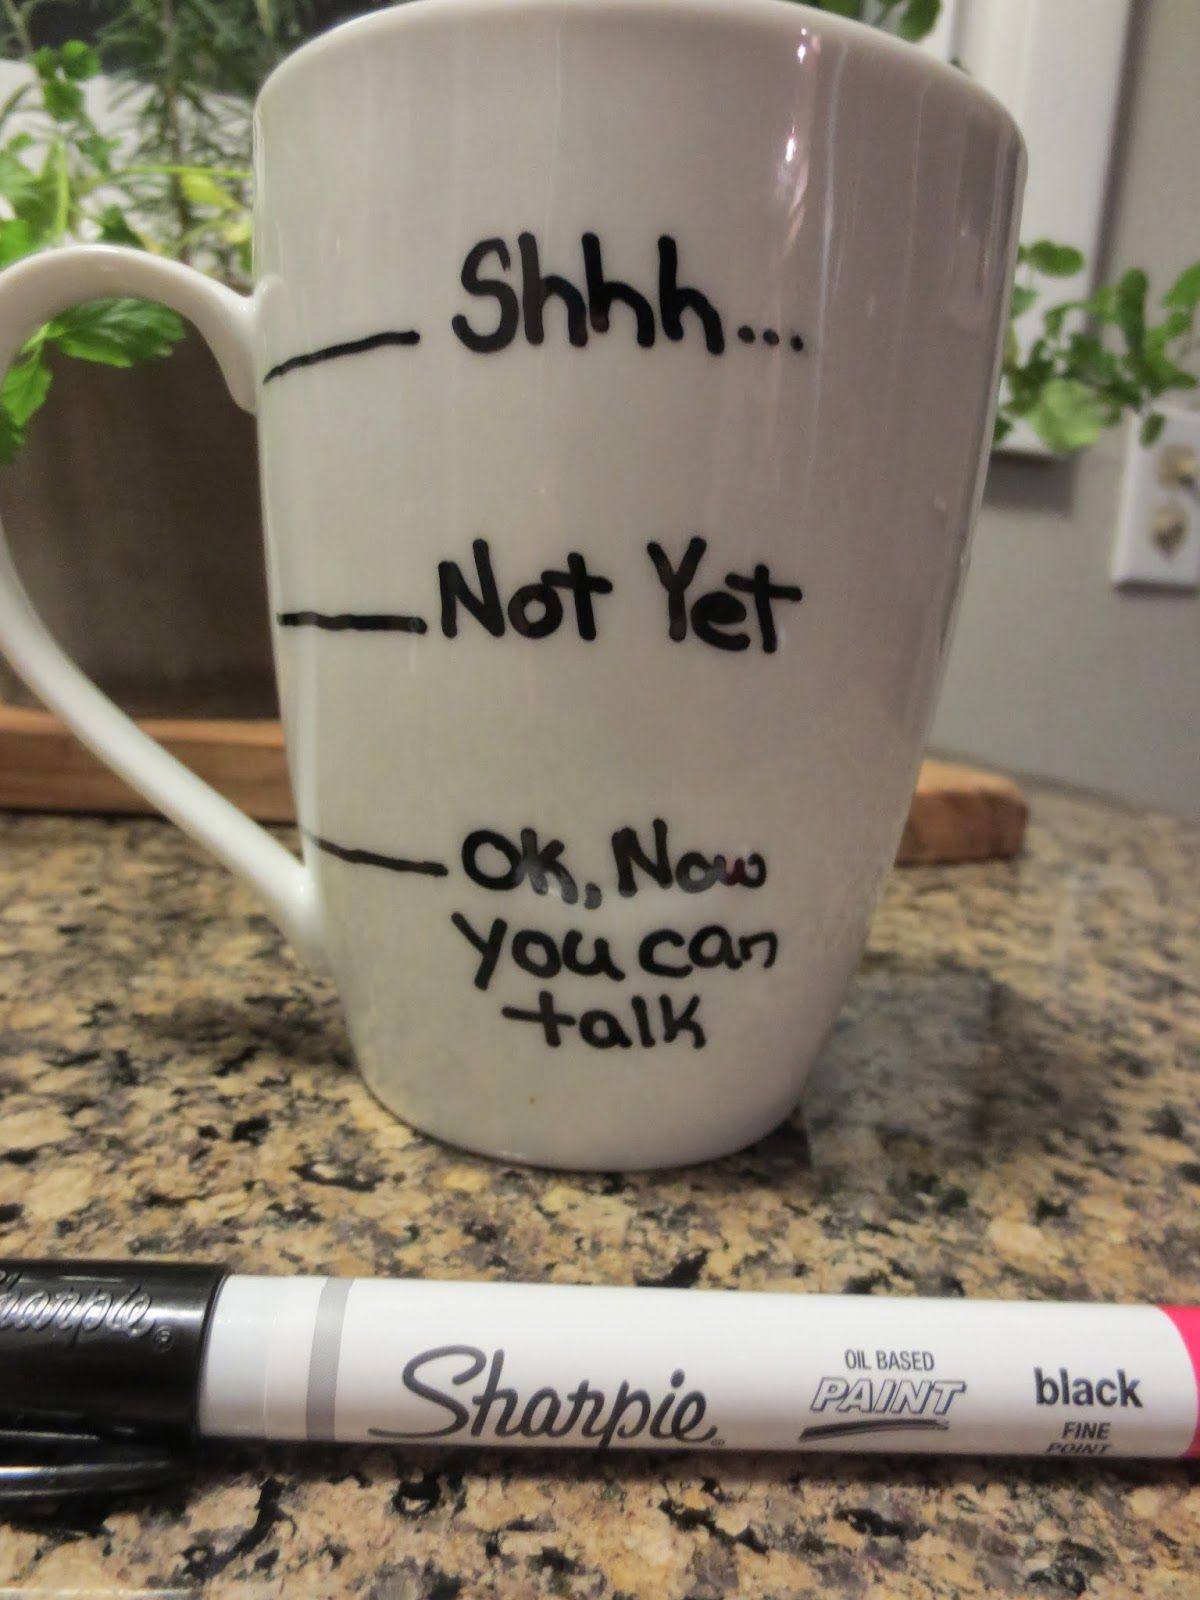 Sharpie mug Use OIL BASED SHARPIE marker and let it dry for at